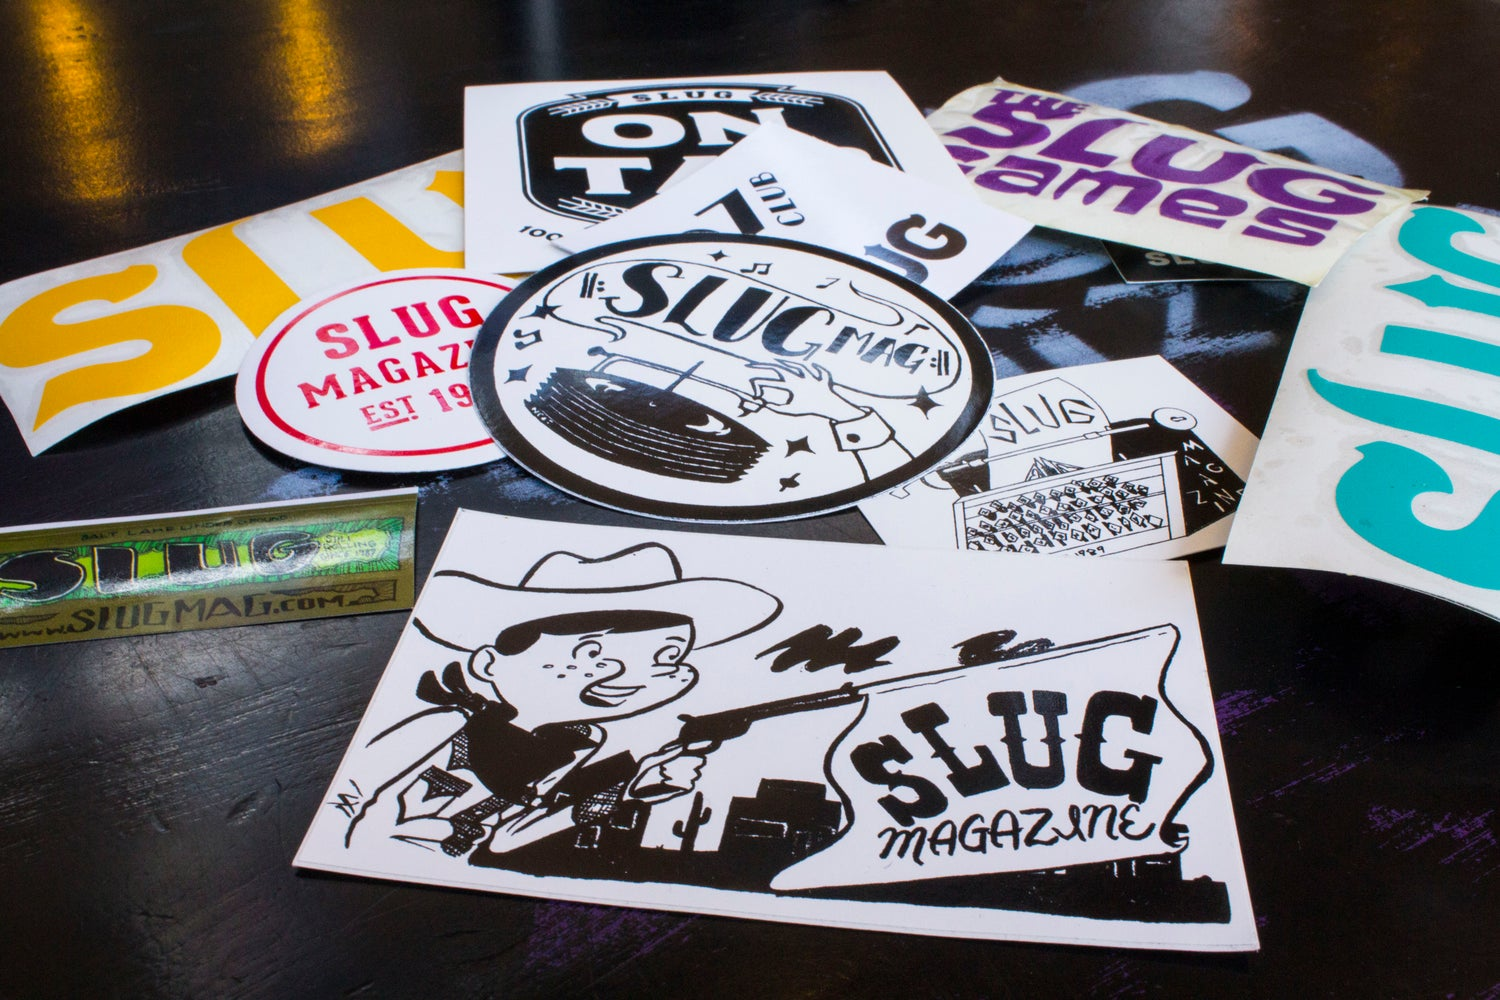 SLUG Mag Sticker FREE with purchase!